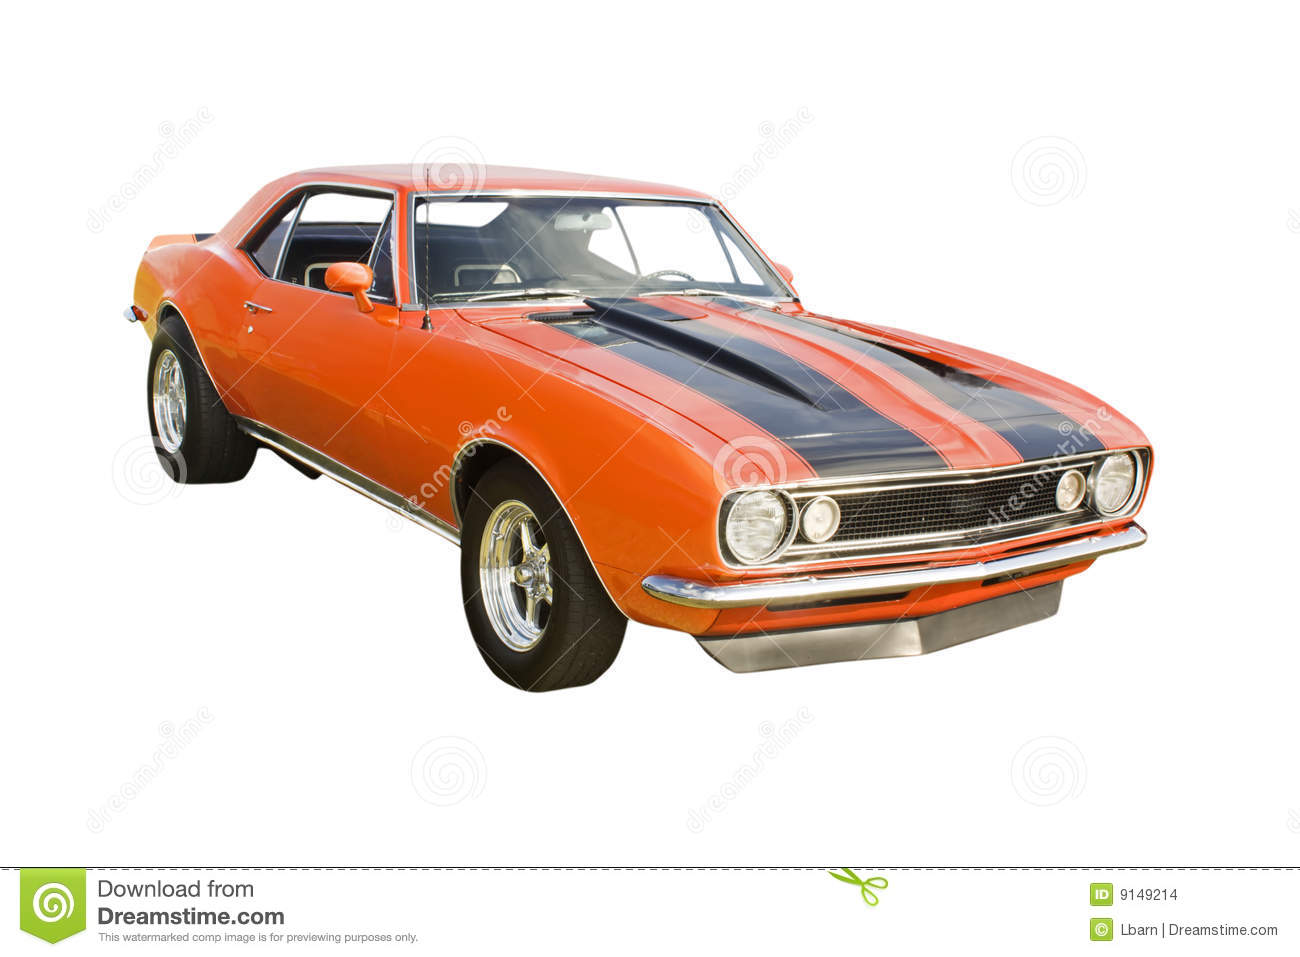 Car show muscle car clipart picture Classic Sport Car Royalty Free Stock Image - Image: 2786466 picture